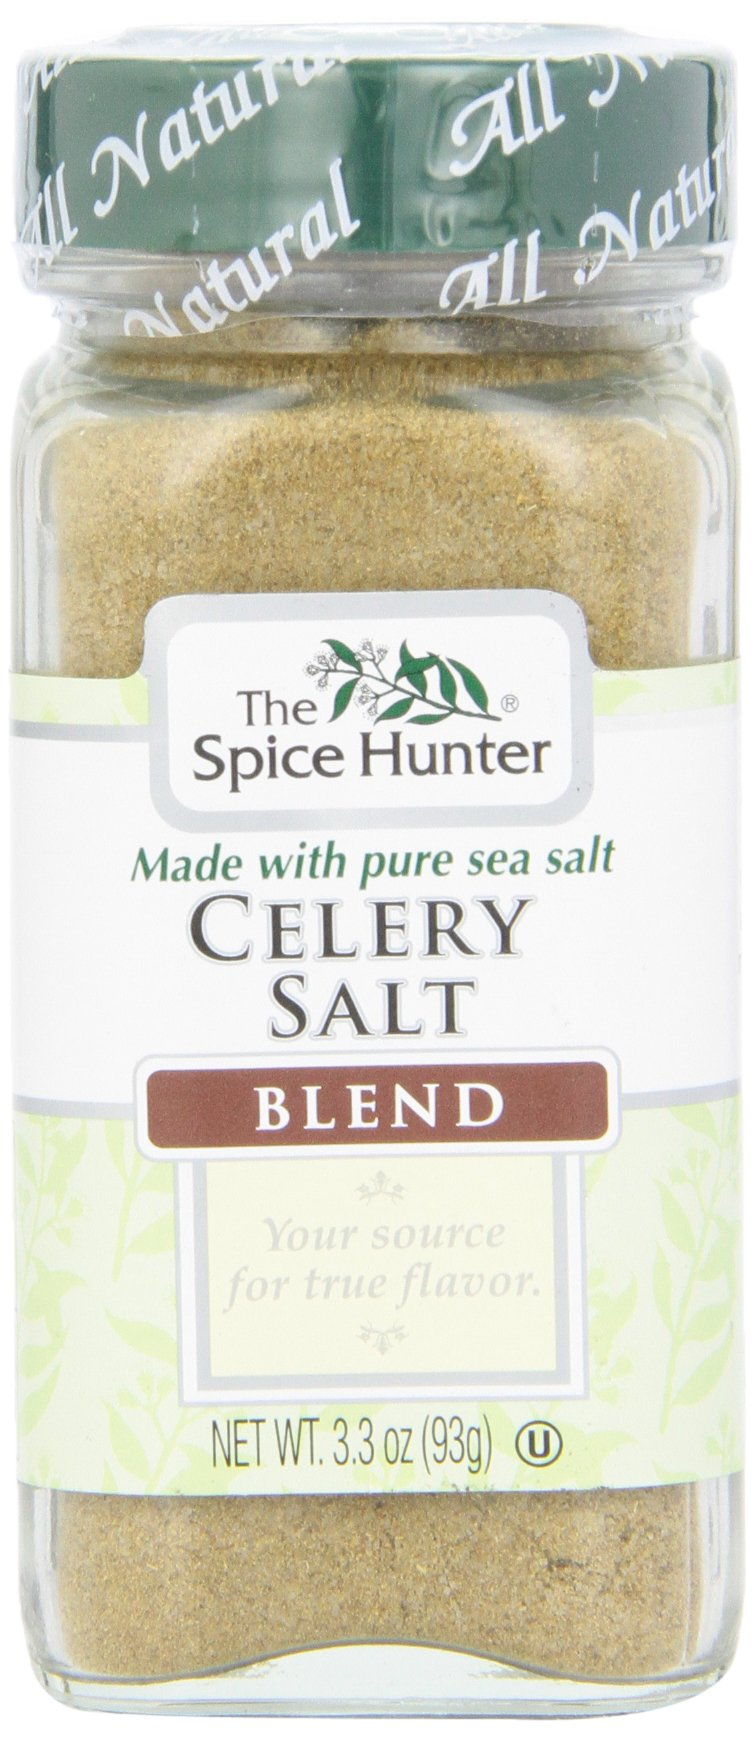 The Spice Hunter Celery Salt Blend, 3.3-Ounce Jar